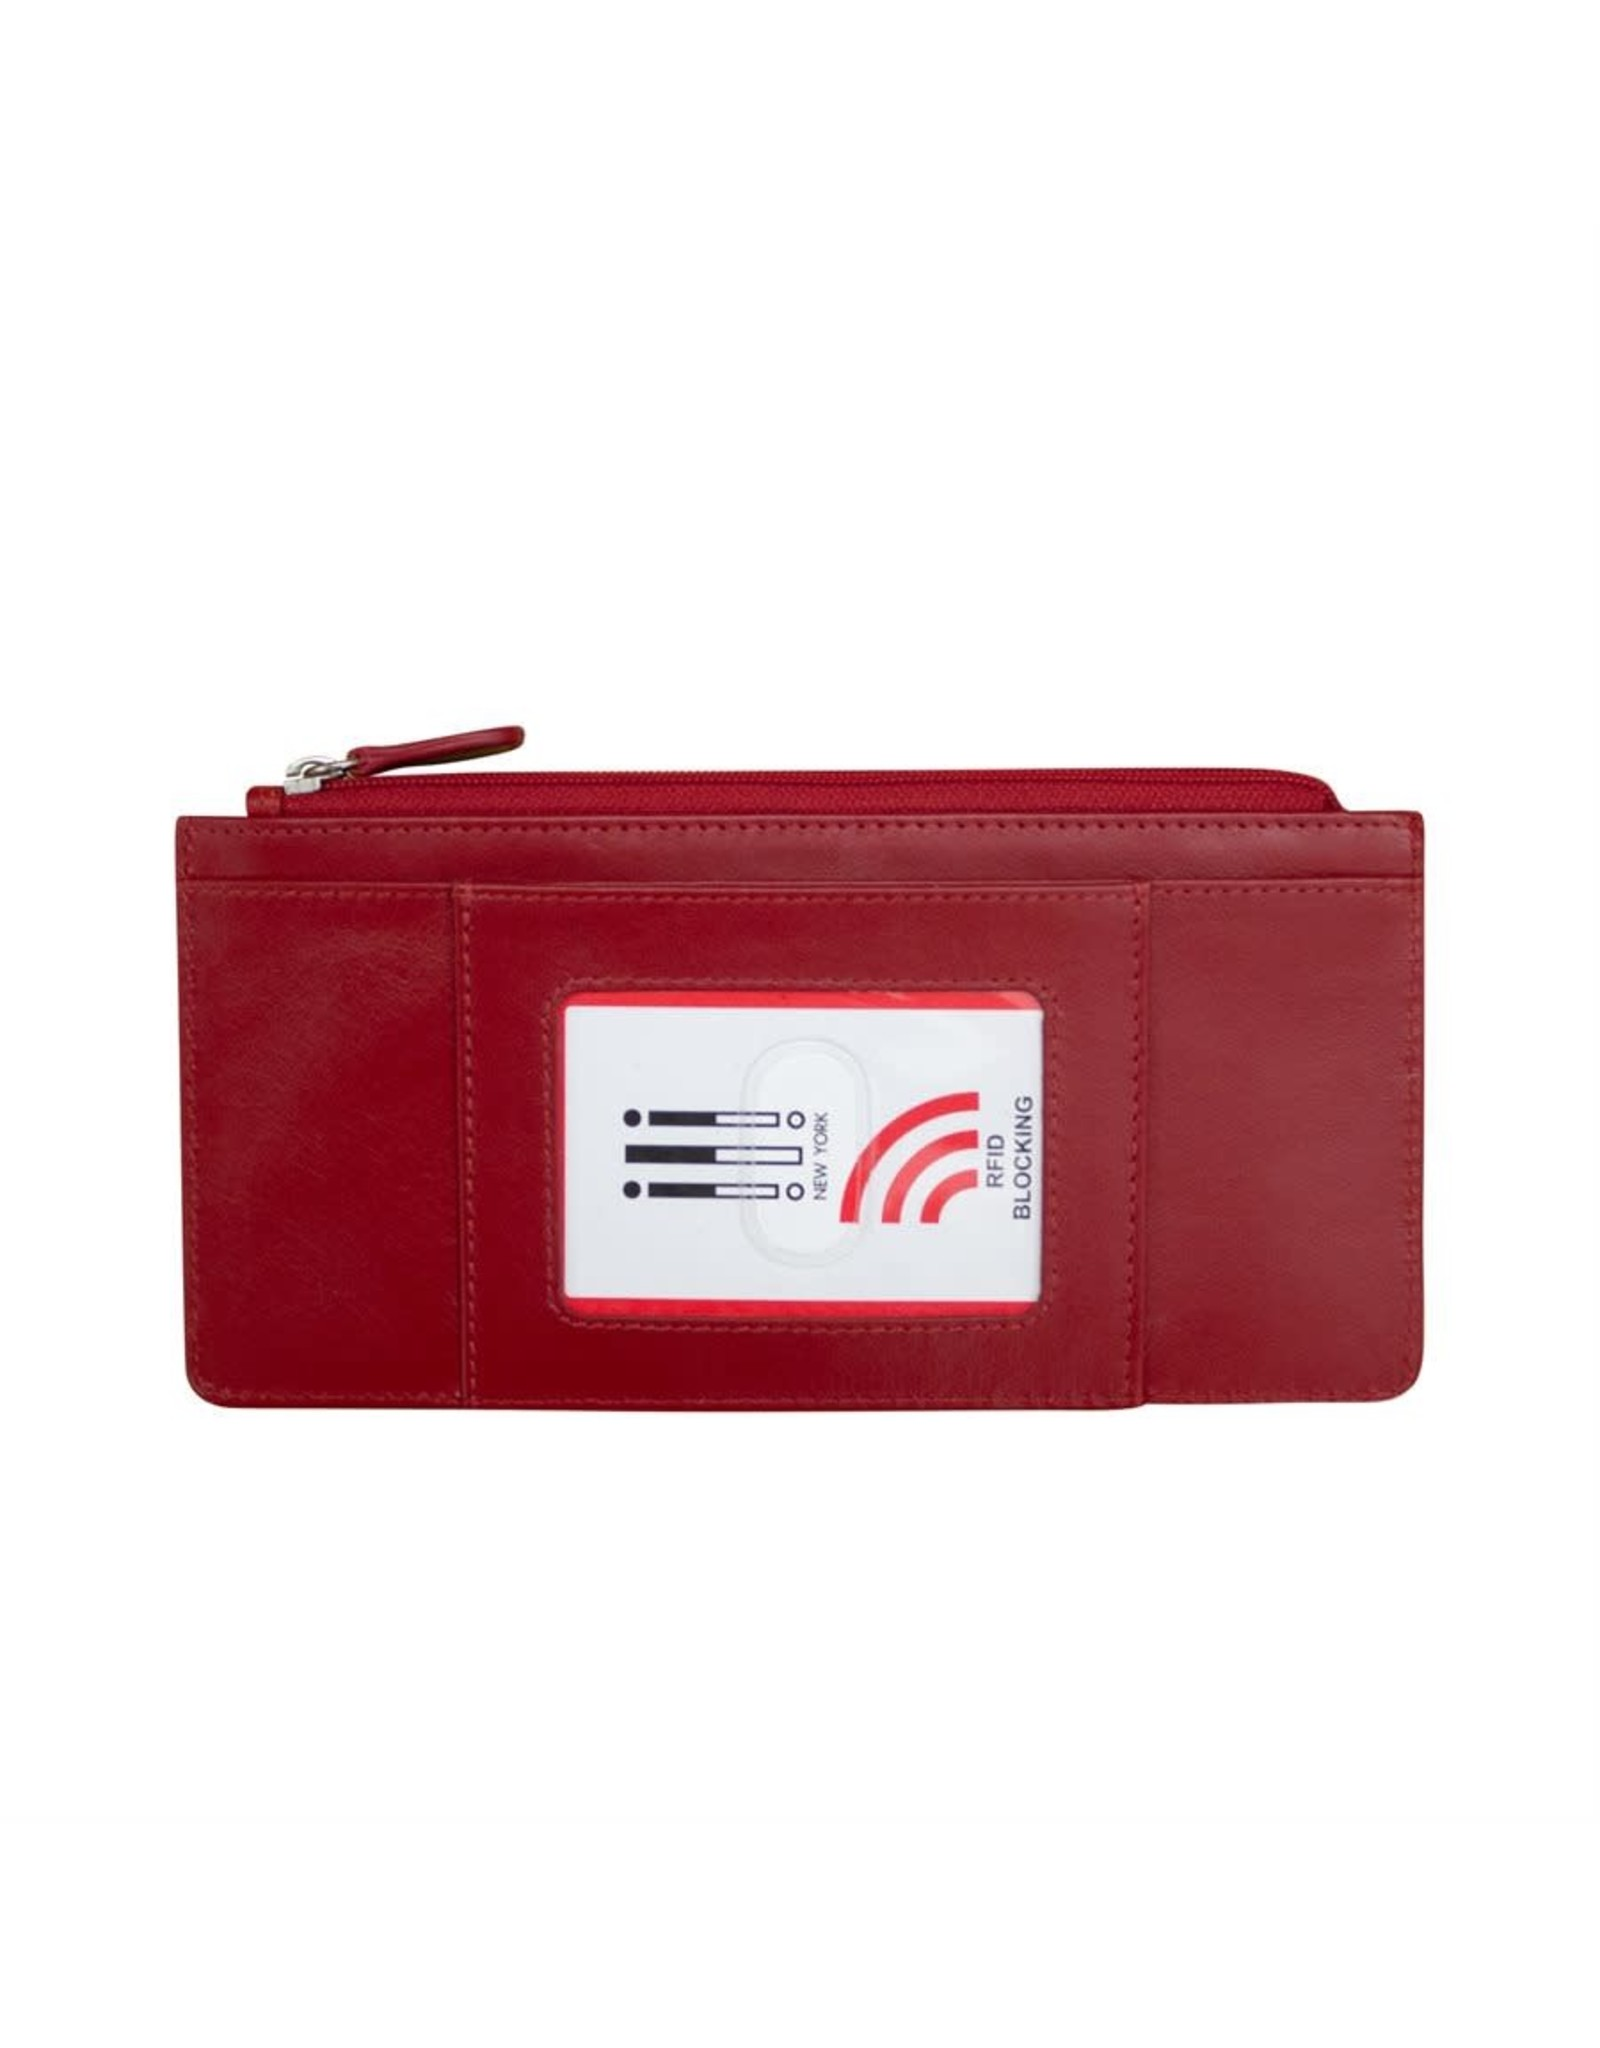 Leather Handbags and Accessories 7306 Red - RFID Credit Card Wallet